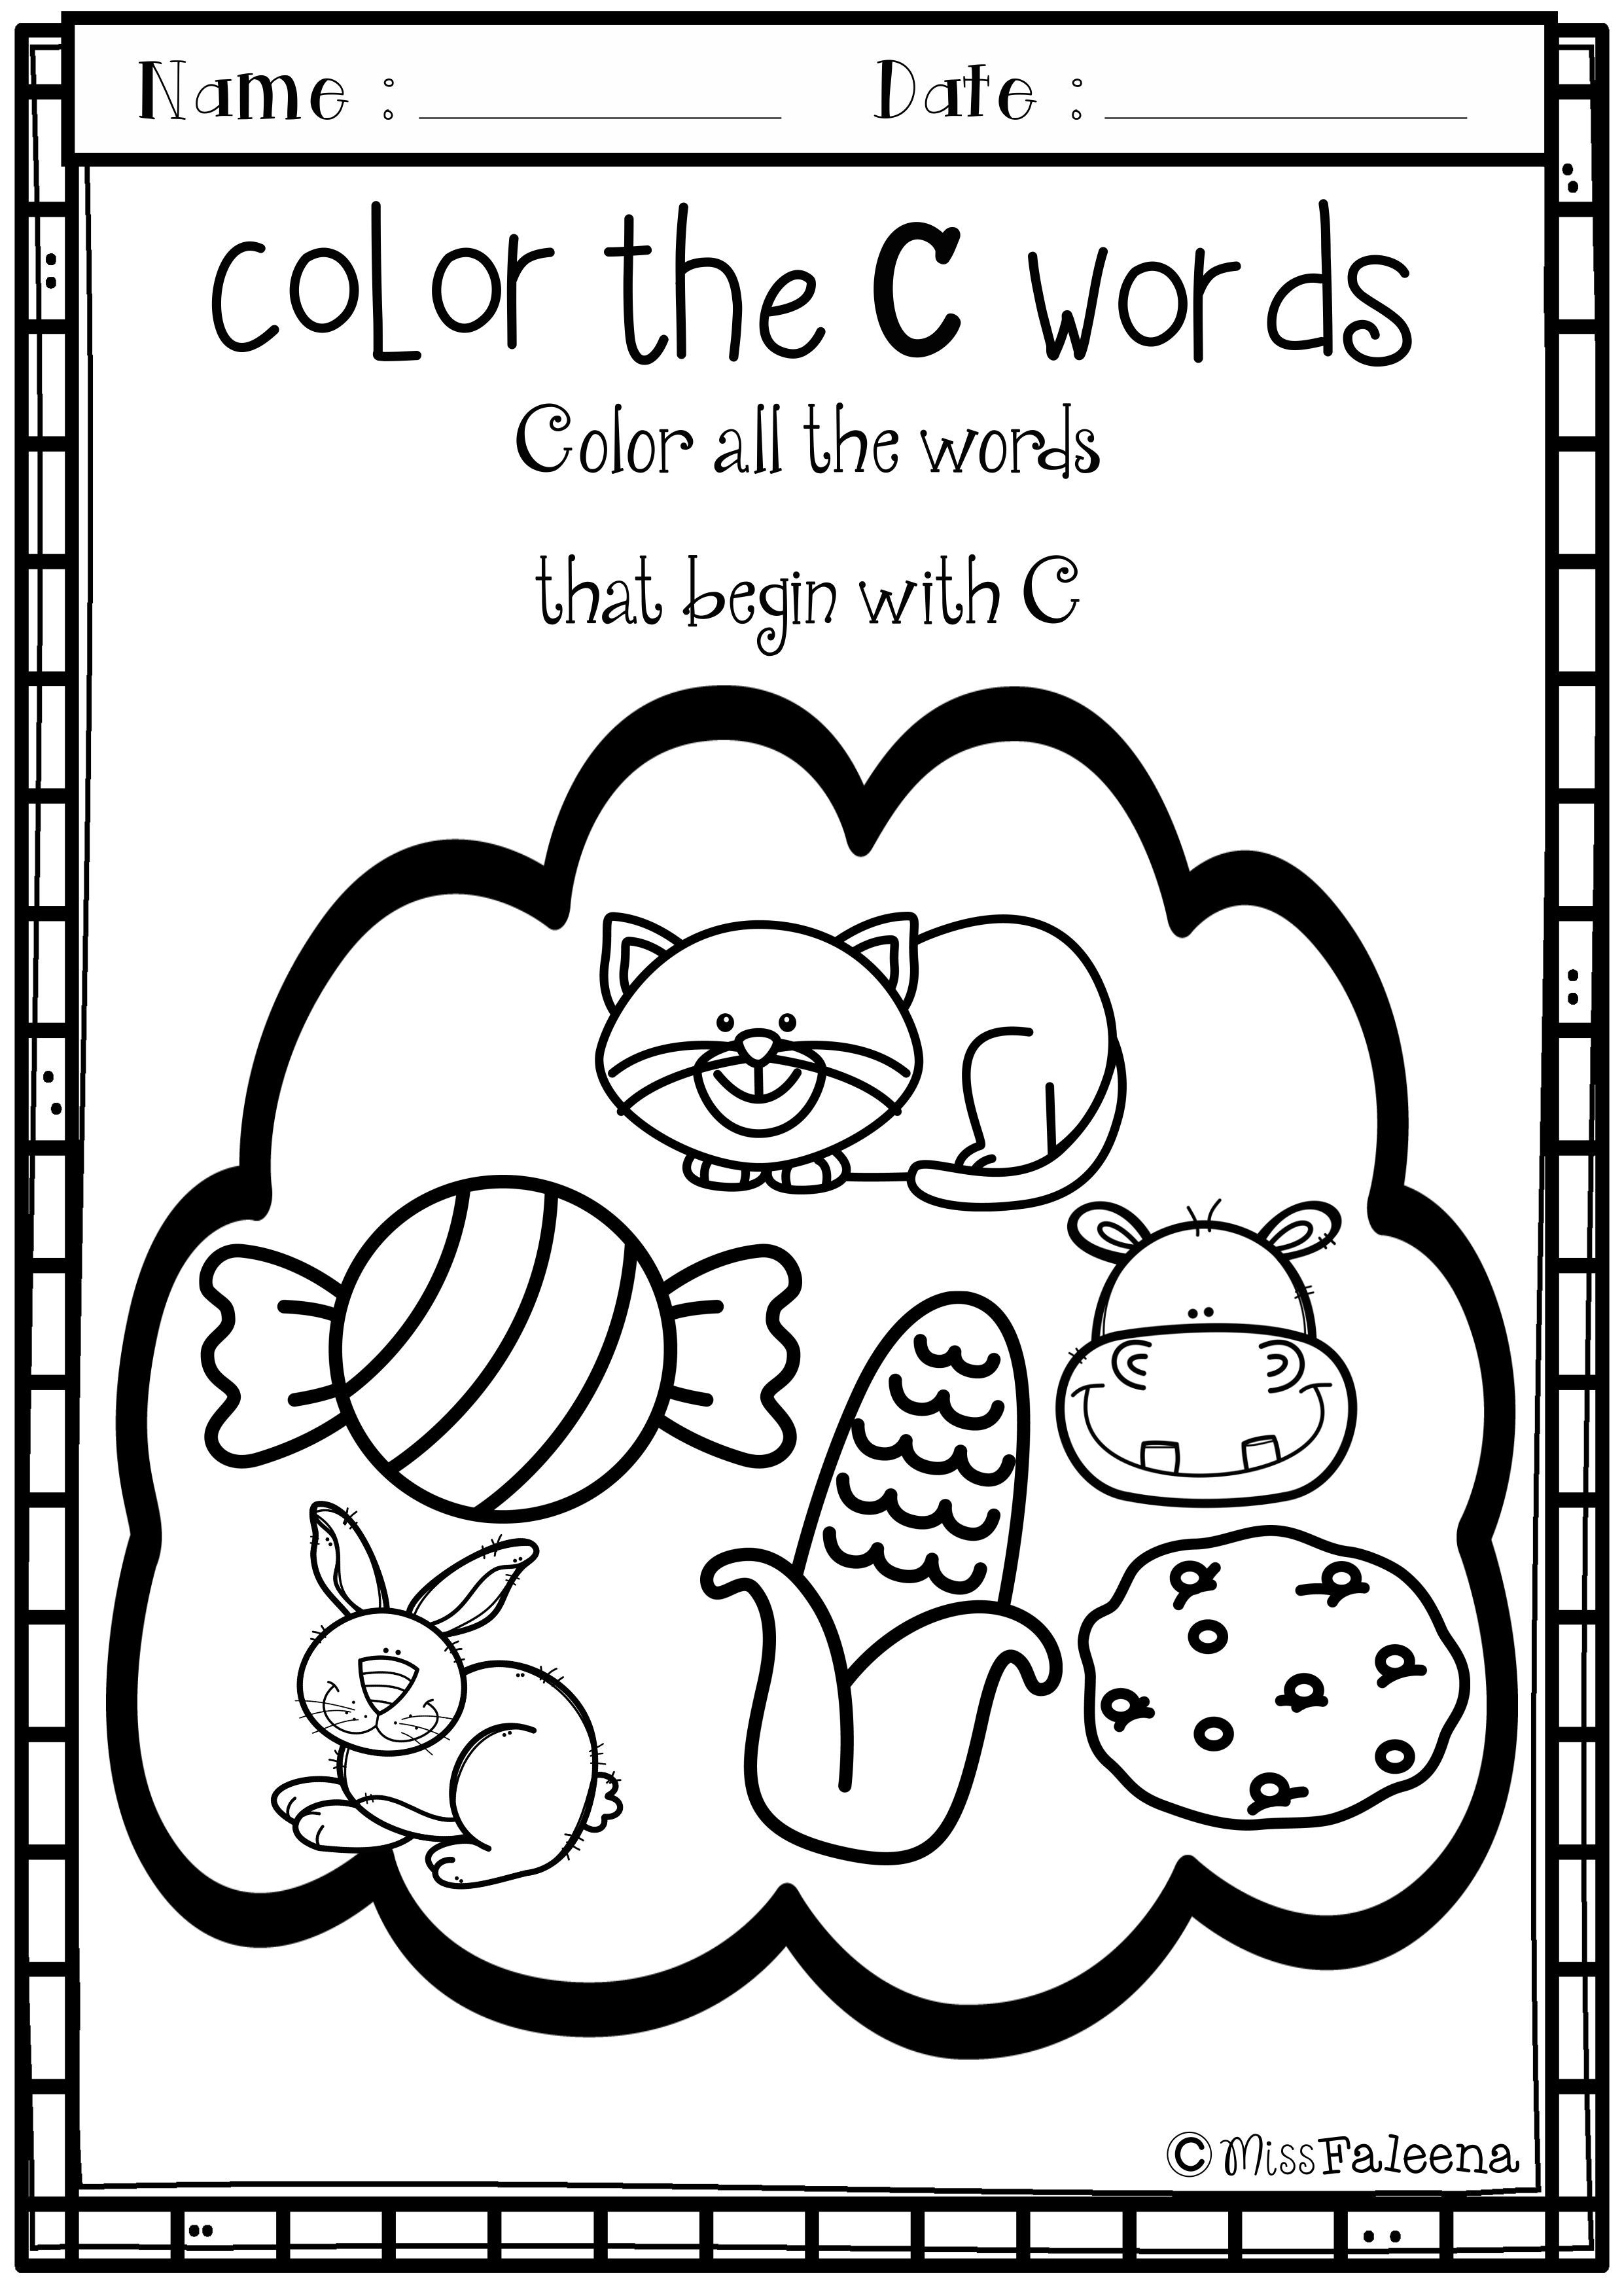 Letter Of The Week C Is Designed To Help Teach Letter C For Children  Letter Of The Week C Is Designed To Help Teach Letter C For Children Who  Are Learning Their Letters You Can Use As A Class Time Worksheet Or  Homework